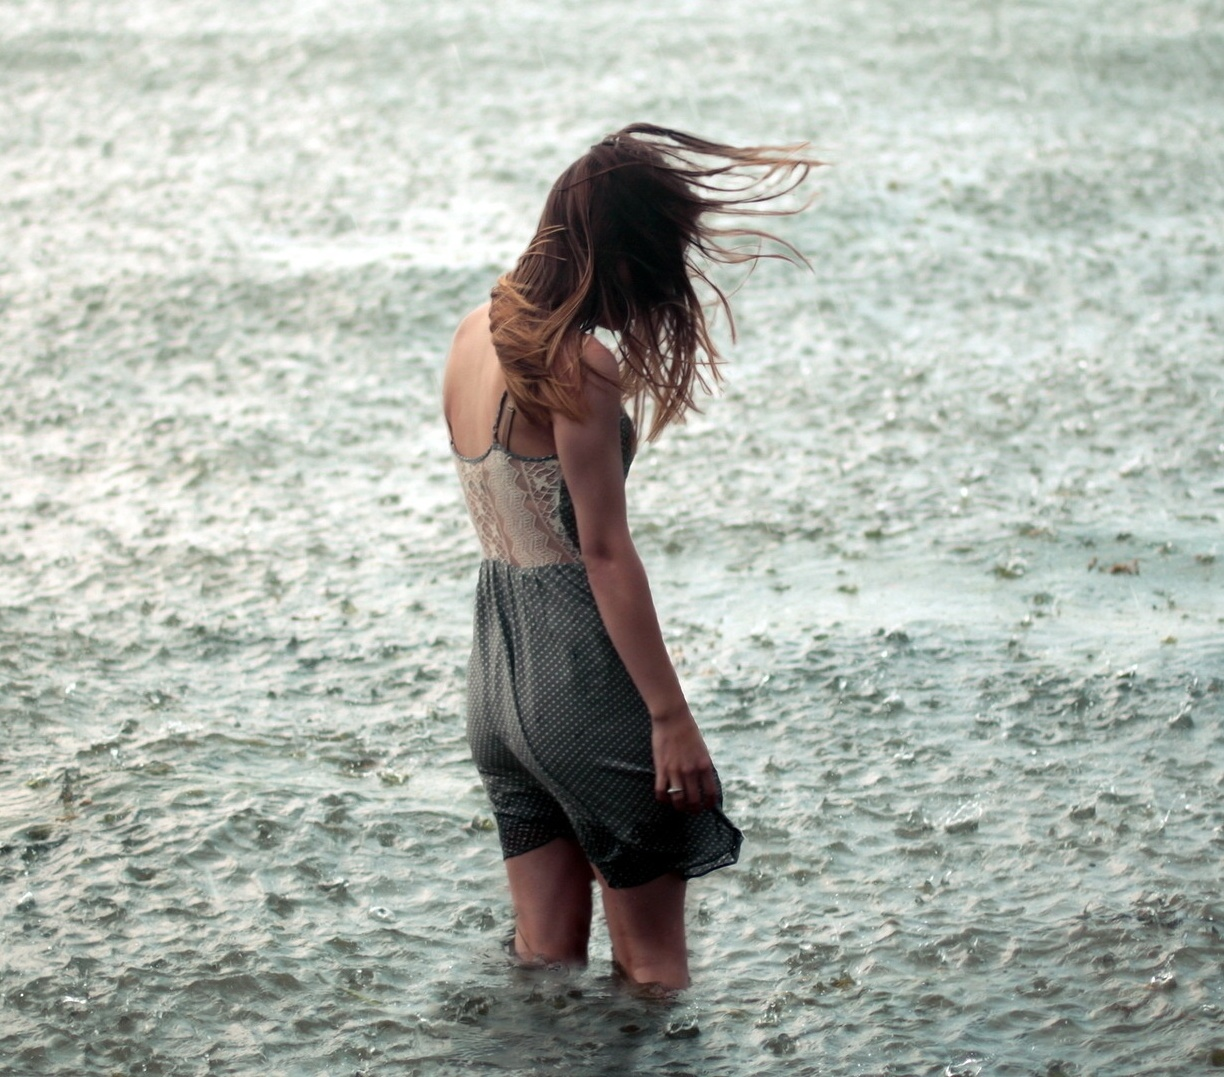 Girl in rain profile dp for whatsapp and facebook freshmorningquotes